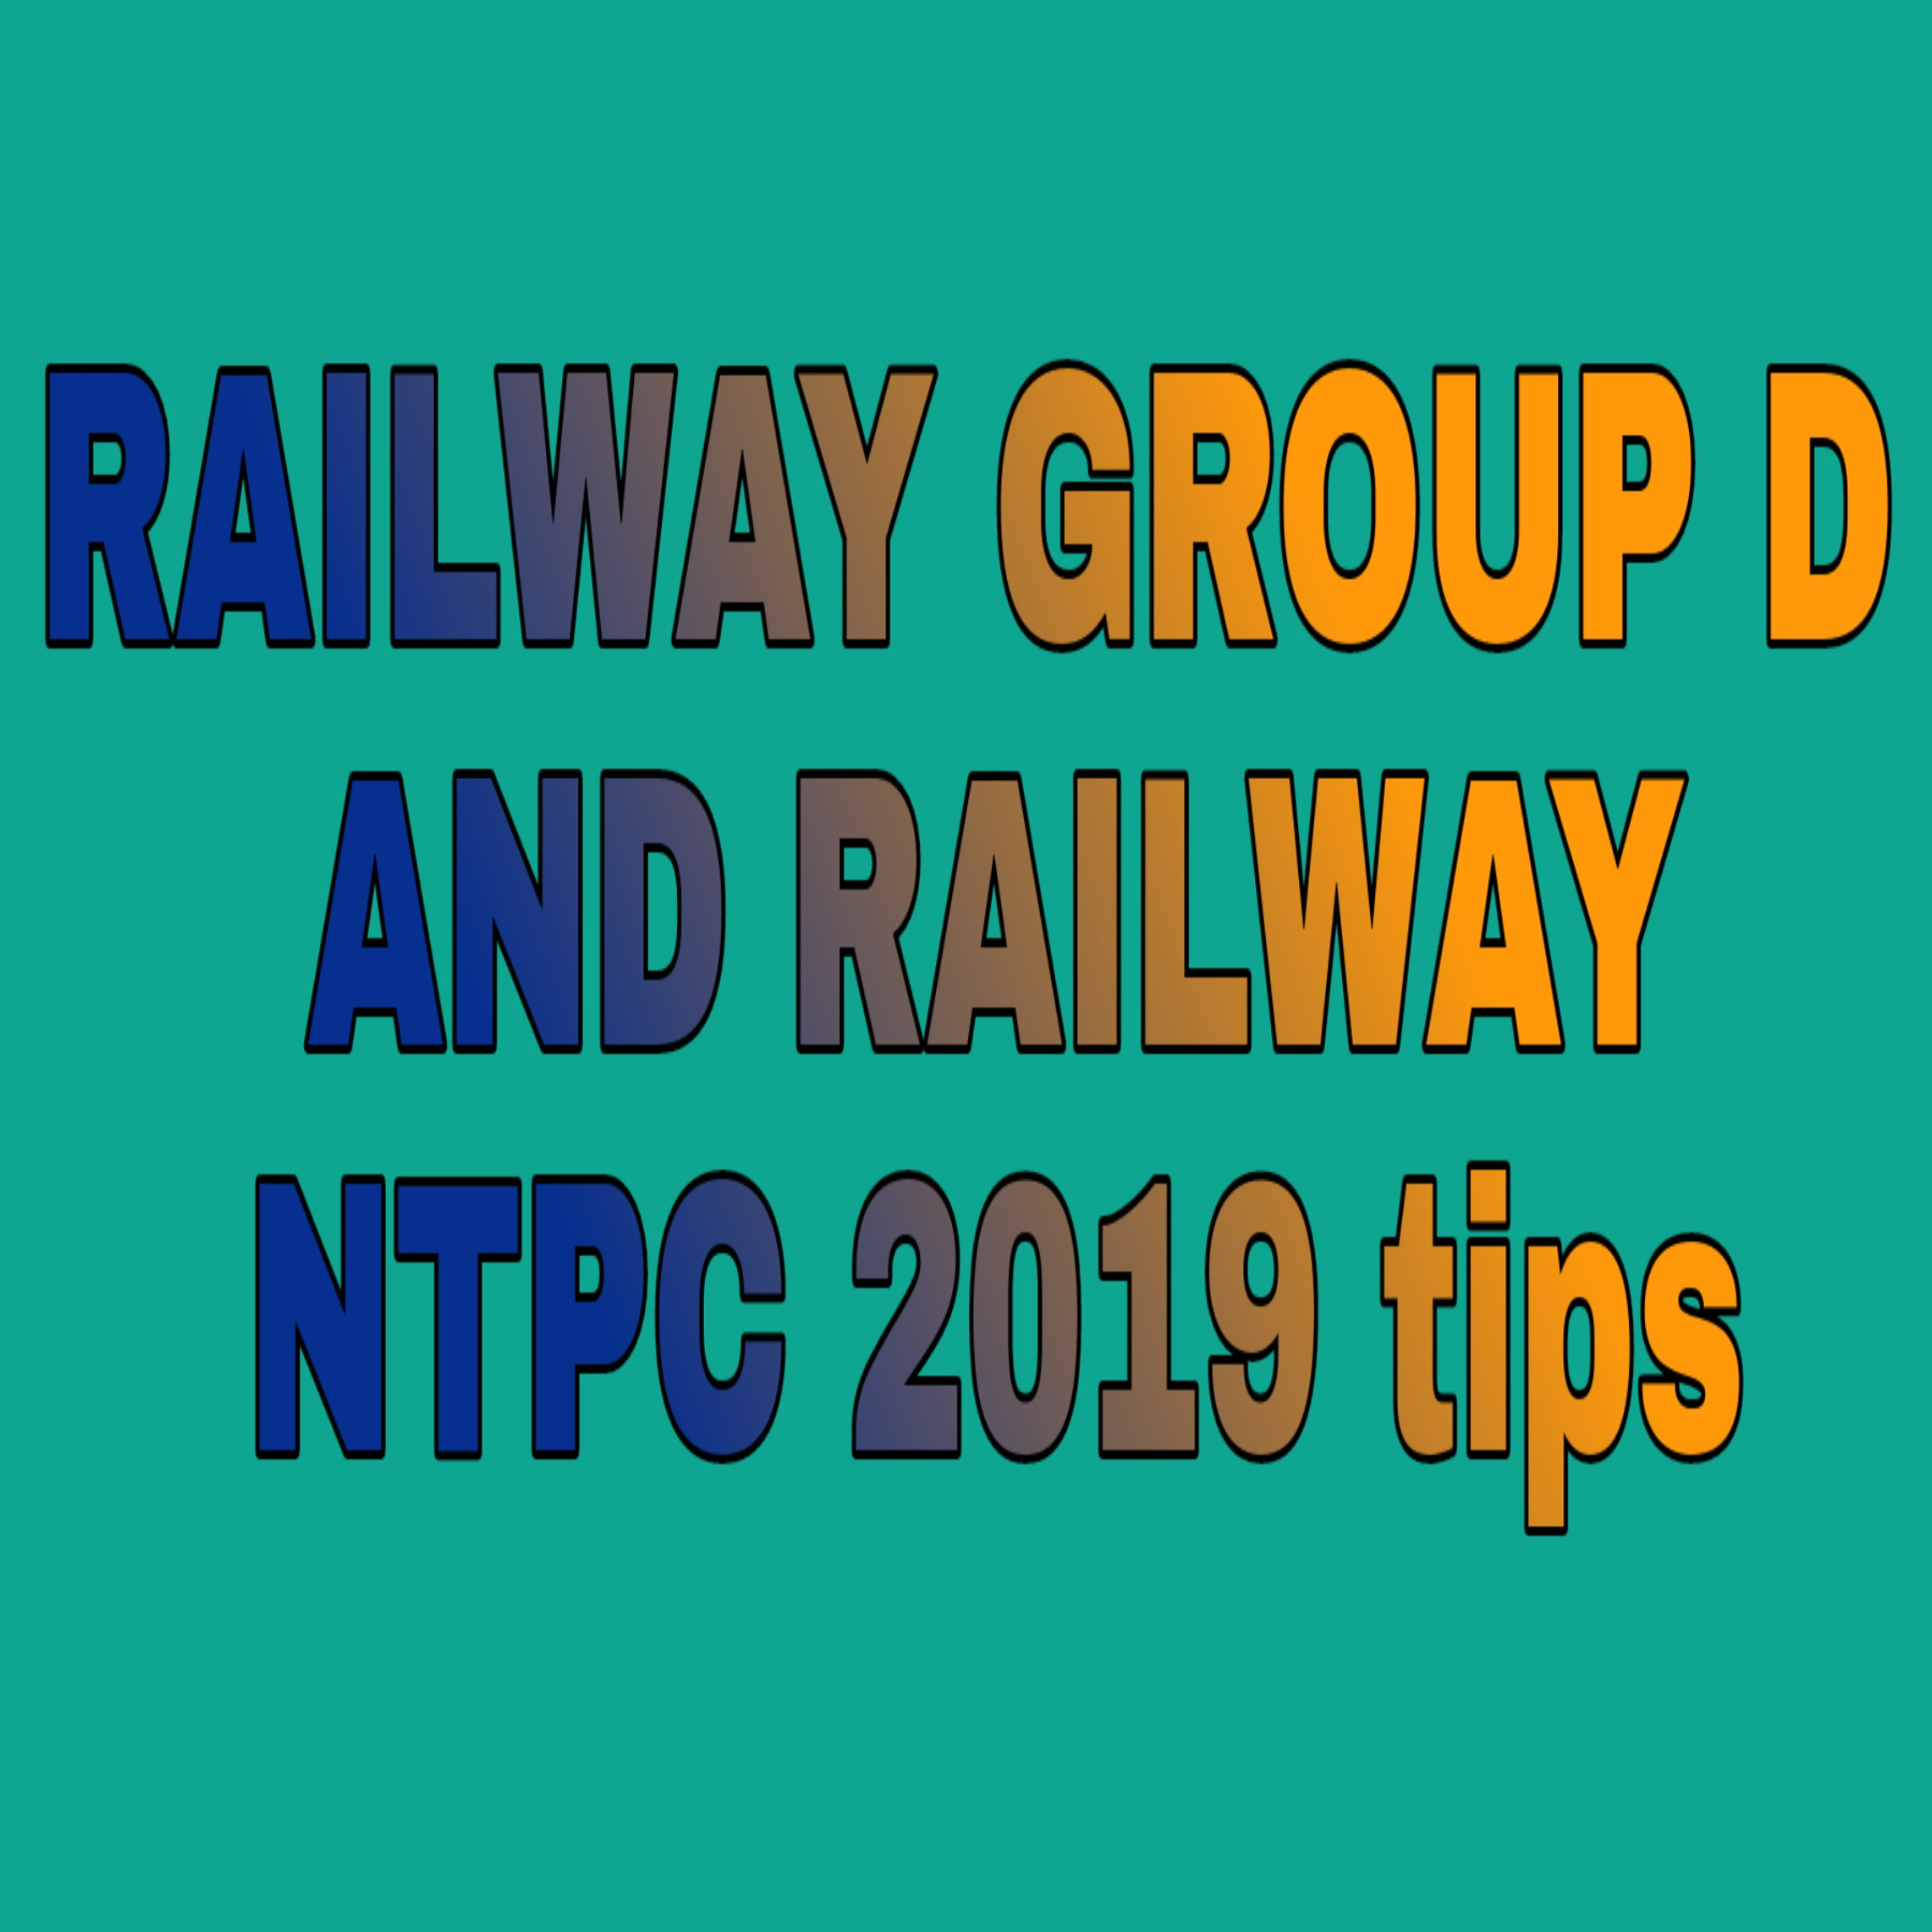 RAILWAY GROUP D AND RAILWAY NTPC 2019 tips